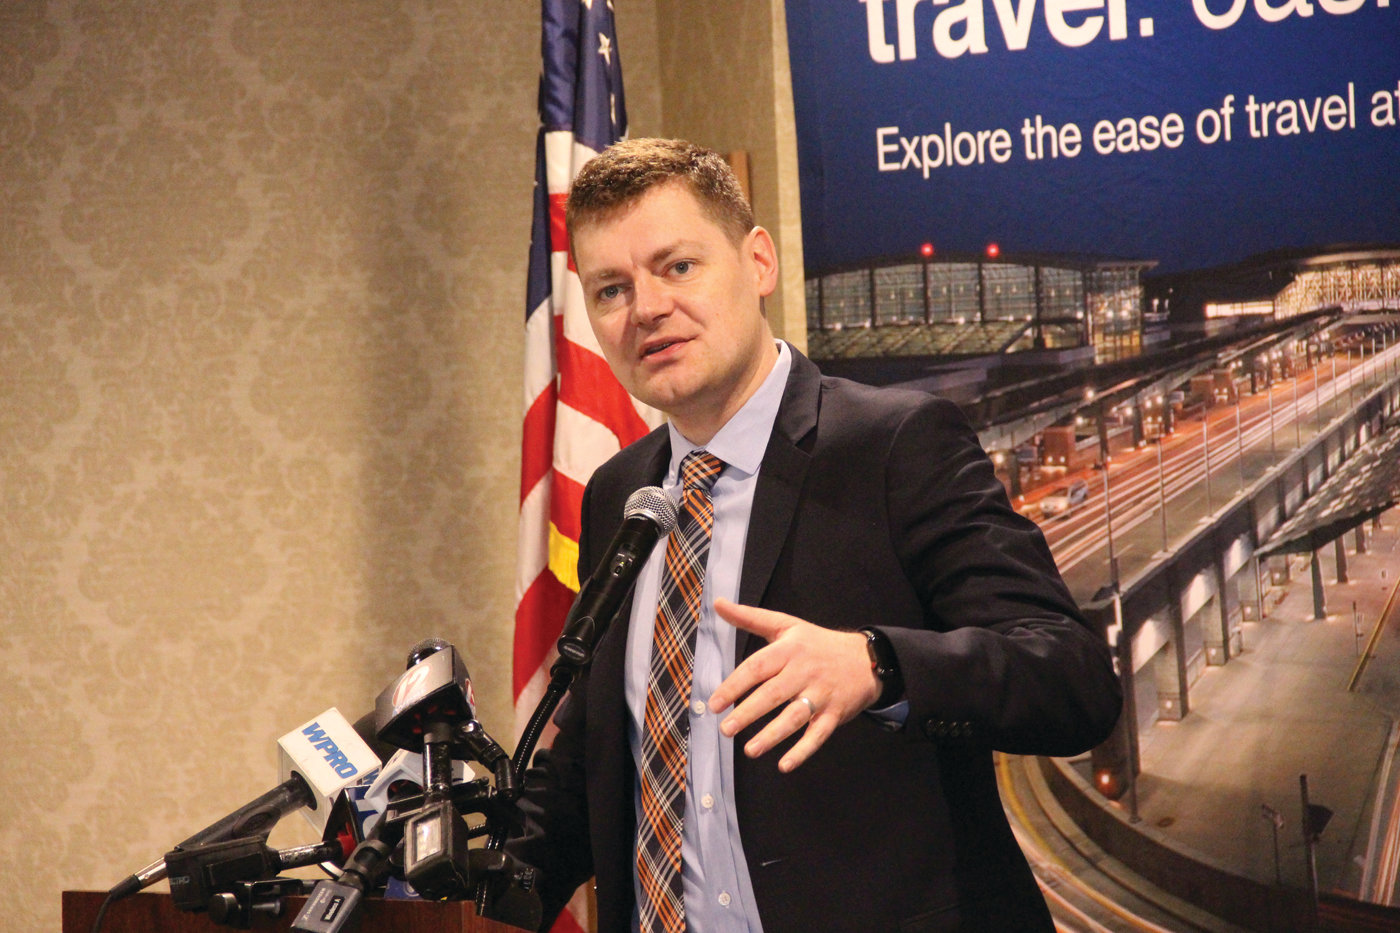 LANDING IN RHODE ISLAND: Brian Davis of Sun Country speaking at Tuesday's announcement.